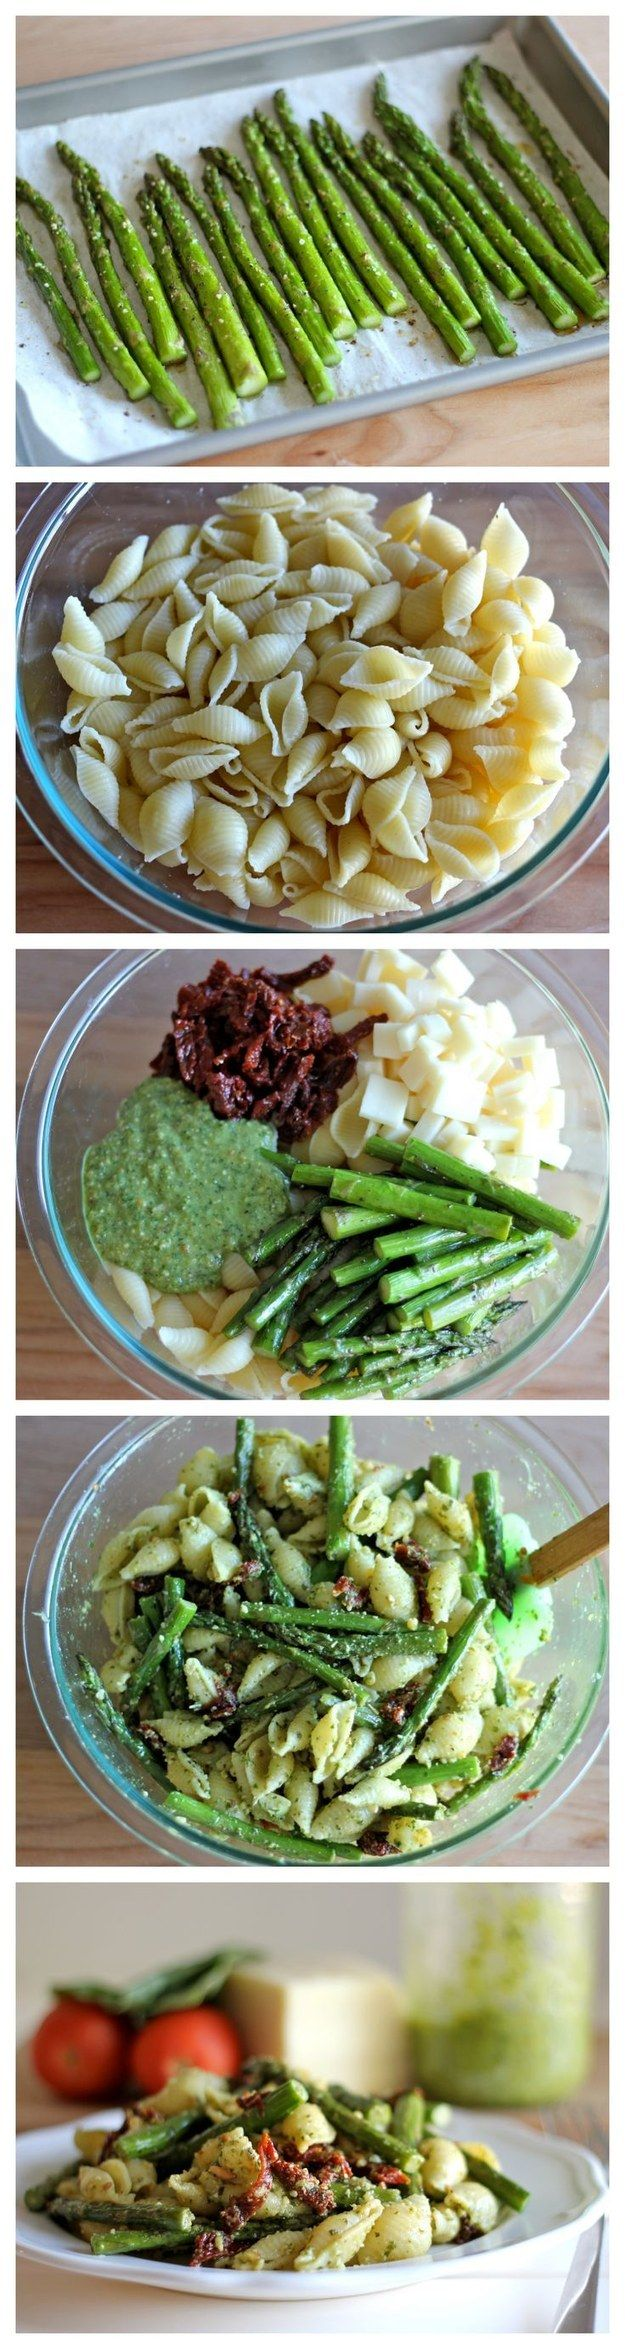 pesto pasta with sundried tomatoes and roasted asparagus.  | 7 Quick Dinners To Make This Week